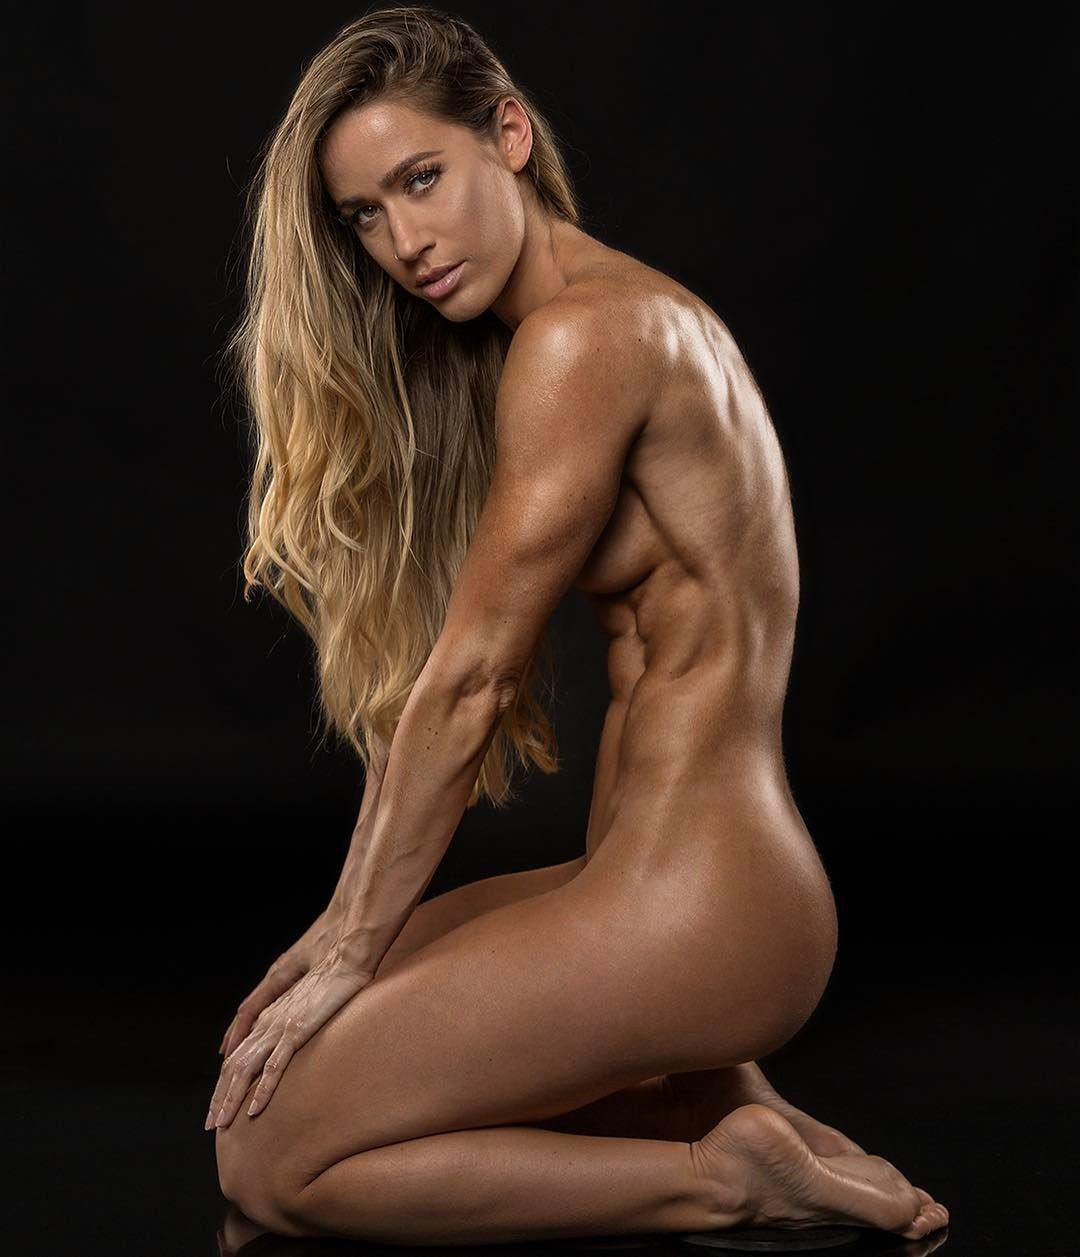 Nude Body Of The Beautiful Fitness Girl Stock Image